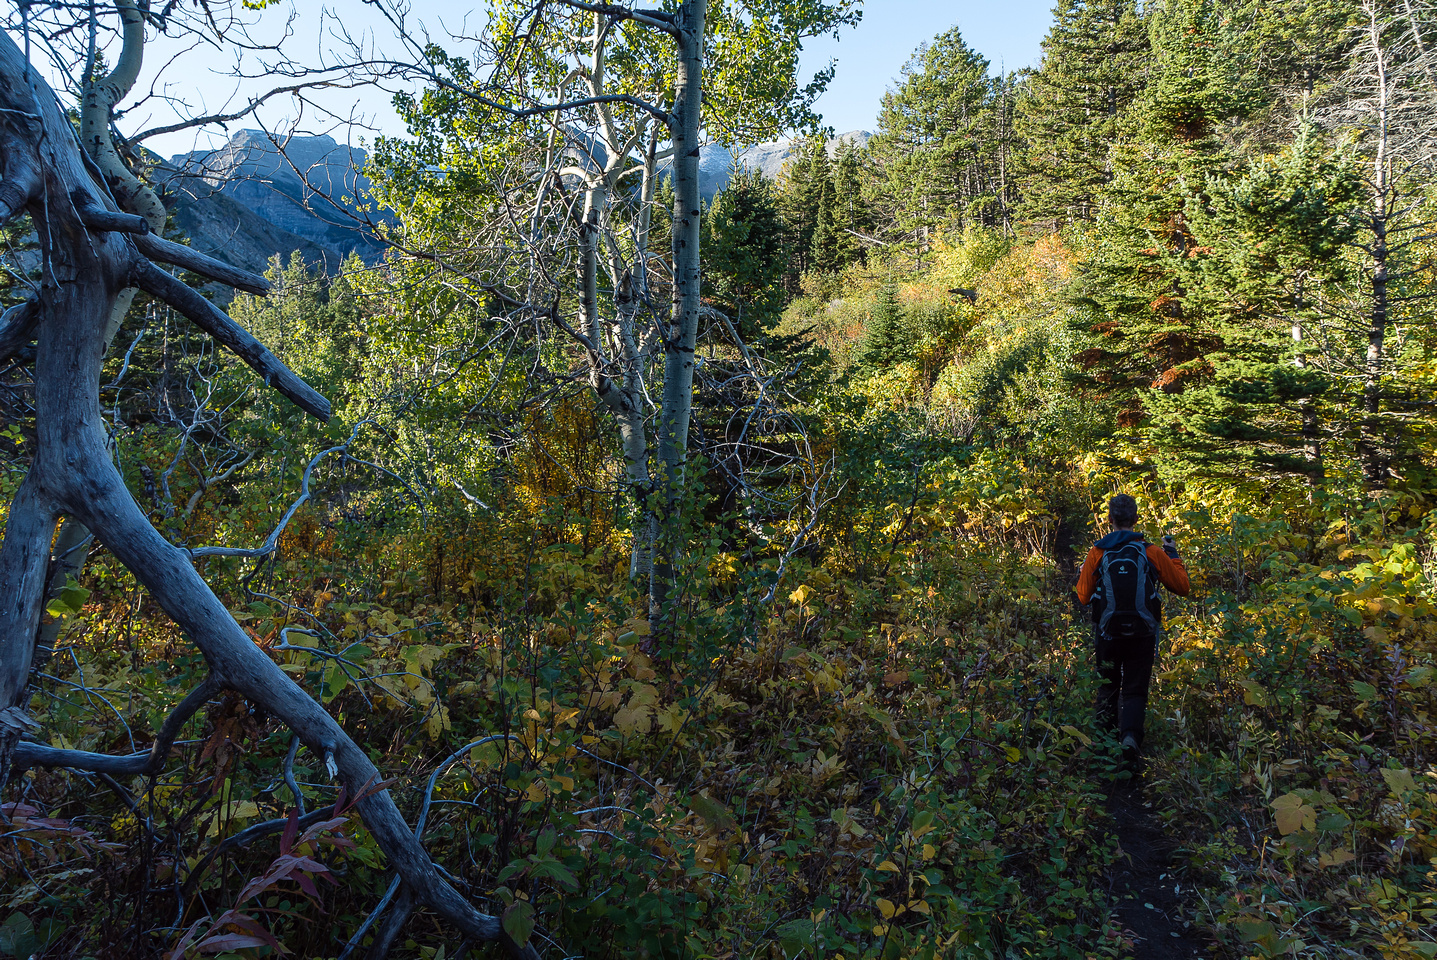 Hiking up a trail through forest to the NE ridge of Vimy Peak.